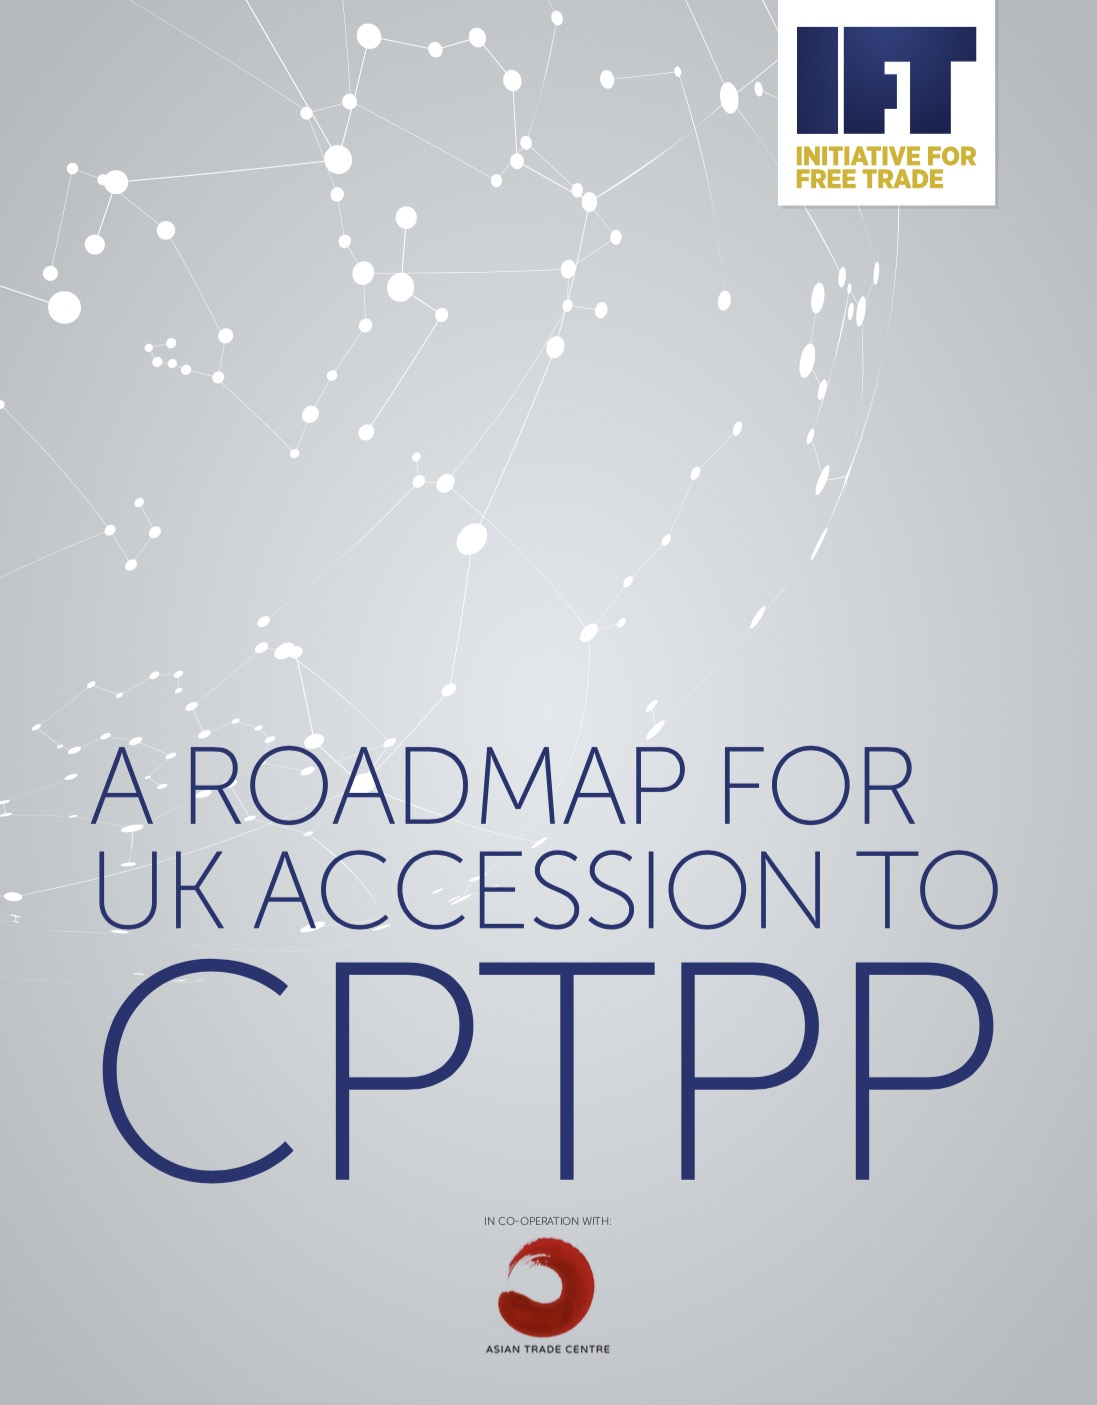 A roadmap for UK accession to CPTPP